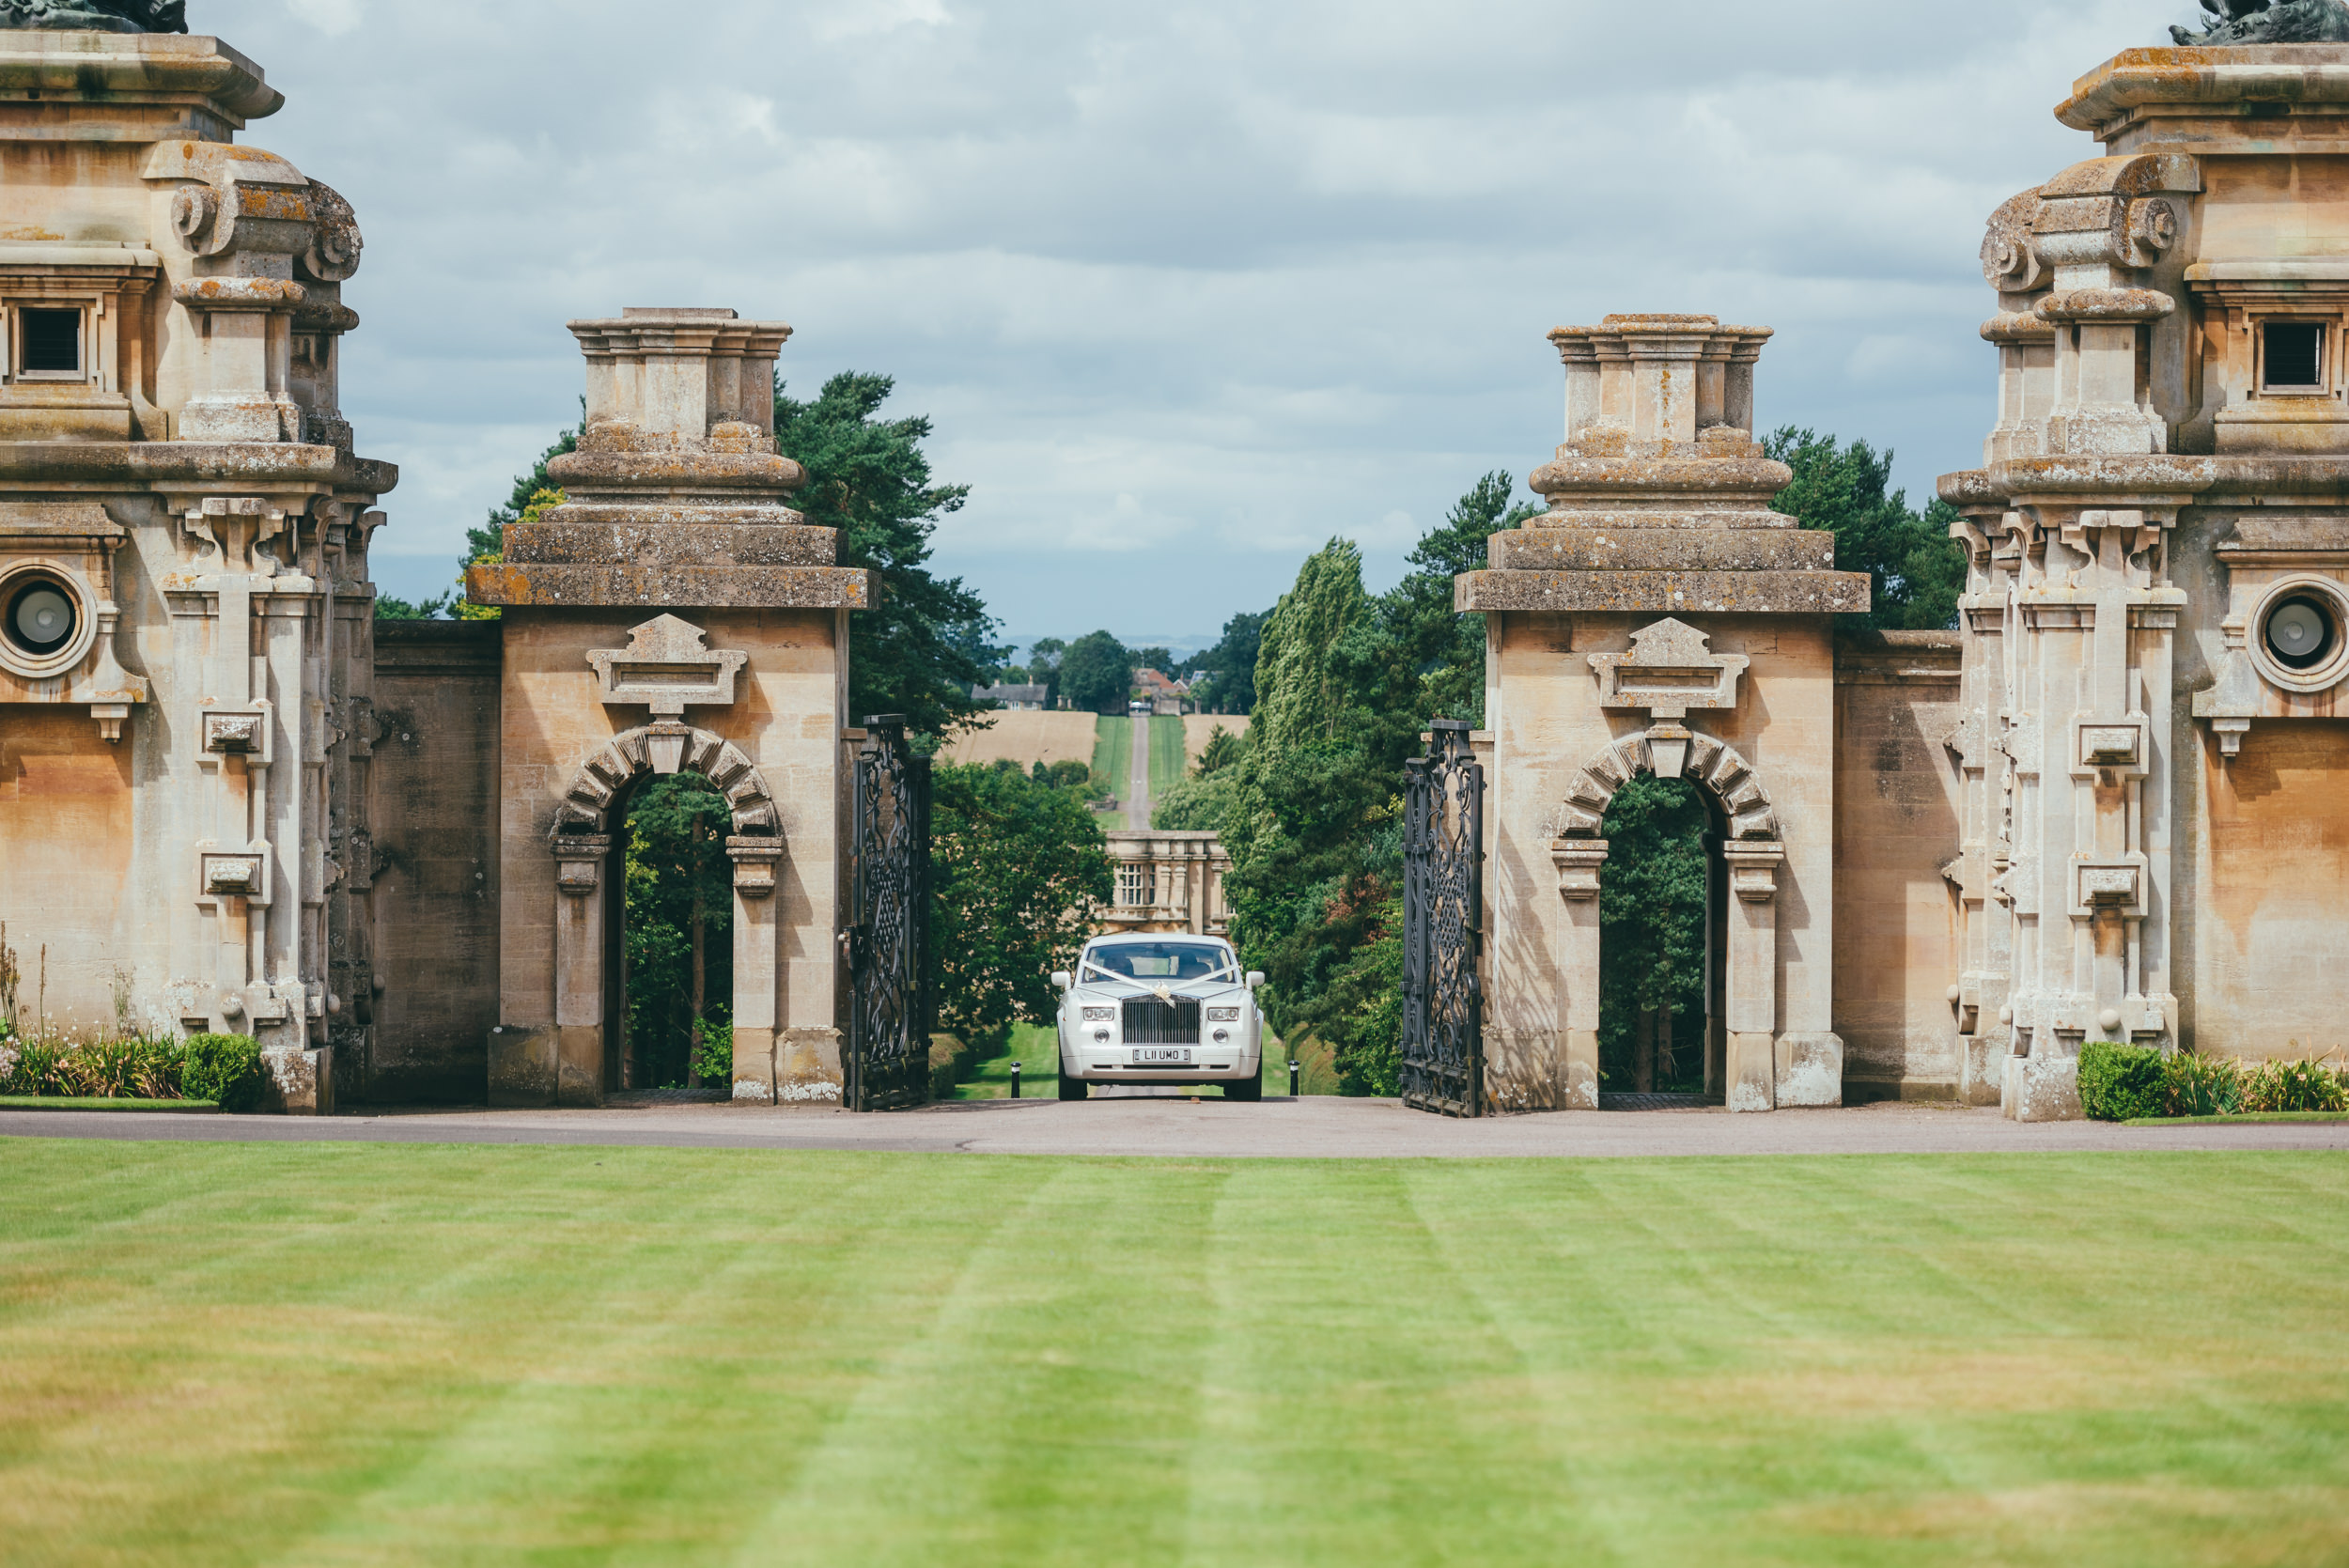 The bride arriving at Harlaxton Manor for her wedding